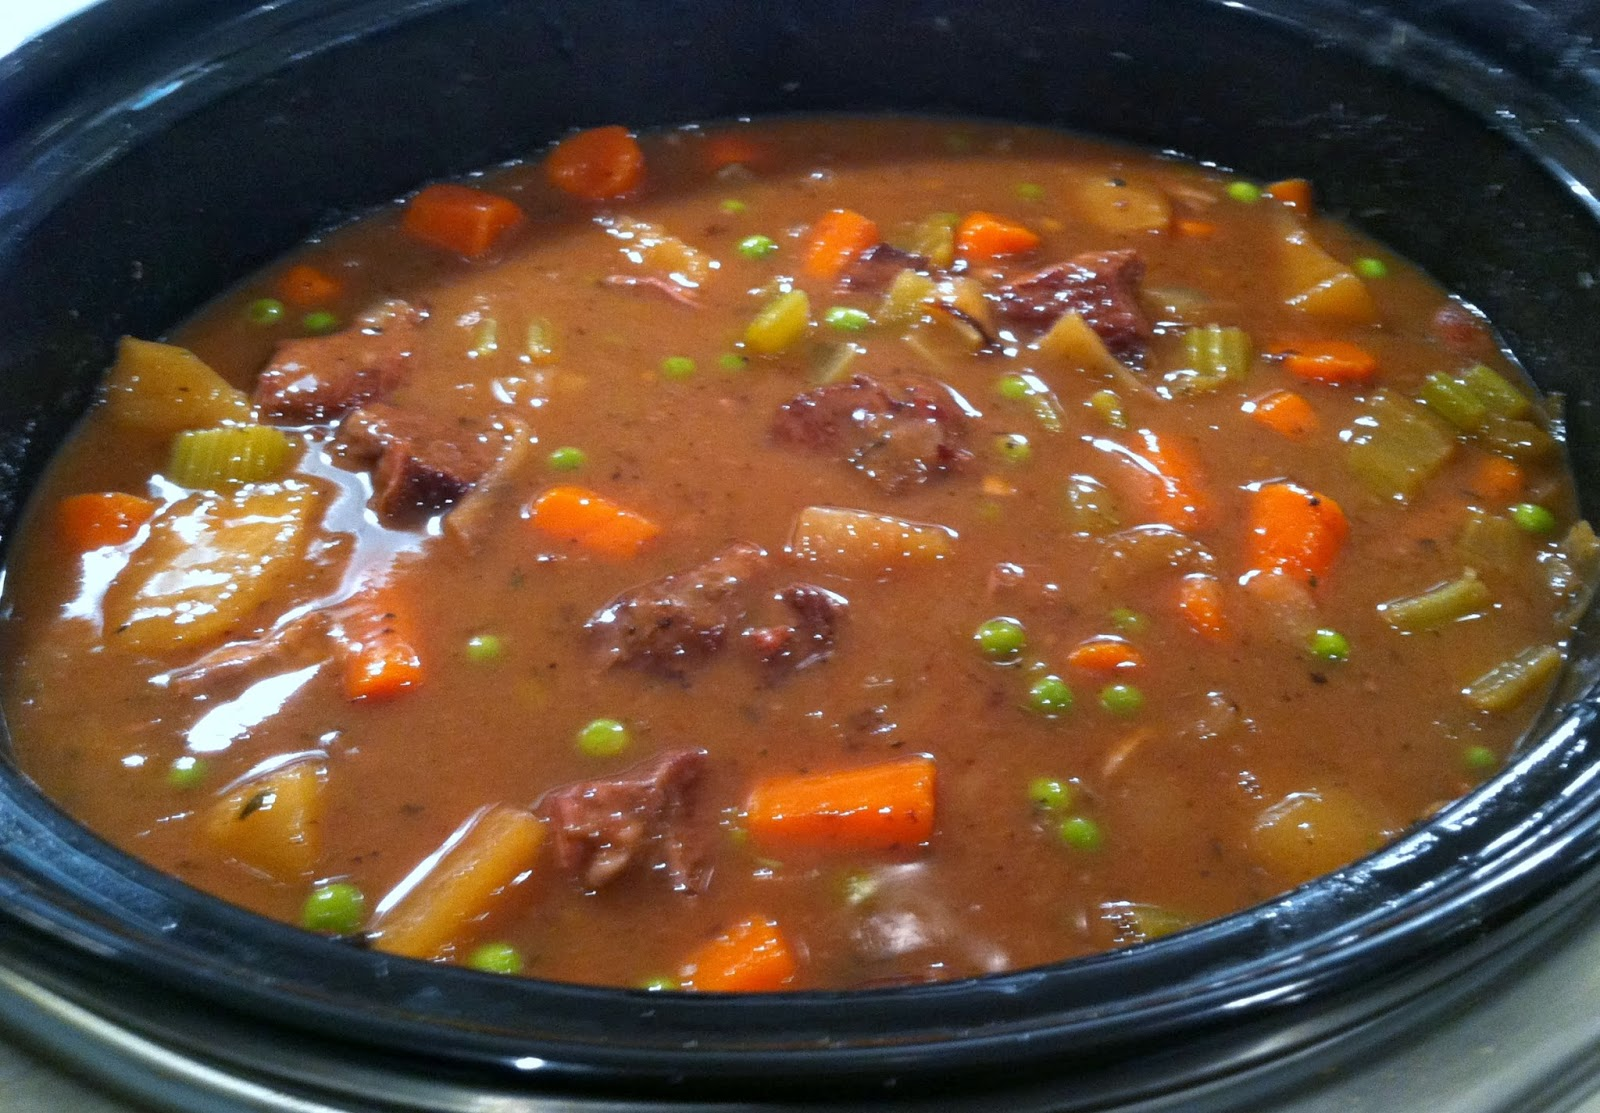 Everything Tasty from My Kitchen: The Best Slow Cooker Beef Stew